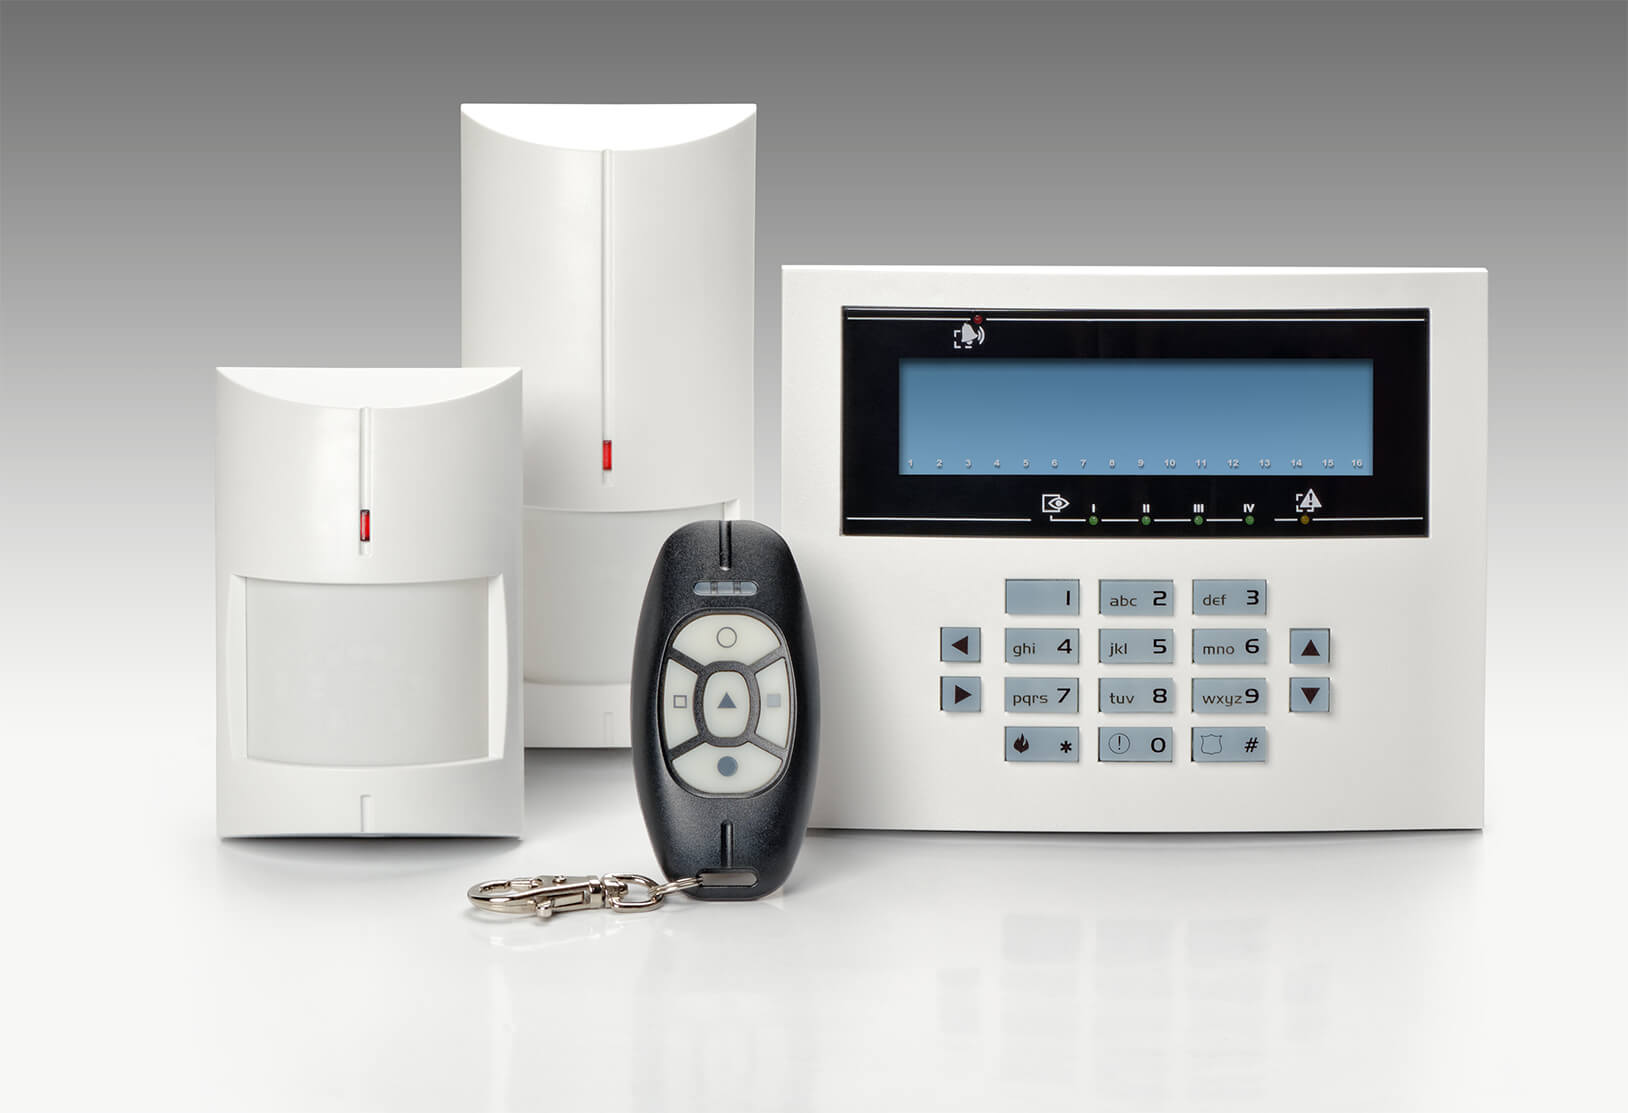 Burglar Alarms Repair in Nine Elms SW8 - Local Nine Elms SW8 alarm engineers.Call 02078872244 - See cost/price for burglar alarm repair and book your alarm engineer. No Hidden charges,No Contracts, Book as you need.Engineers on demand.All alarm makes repaired.Same day service ability.